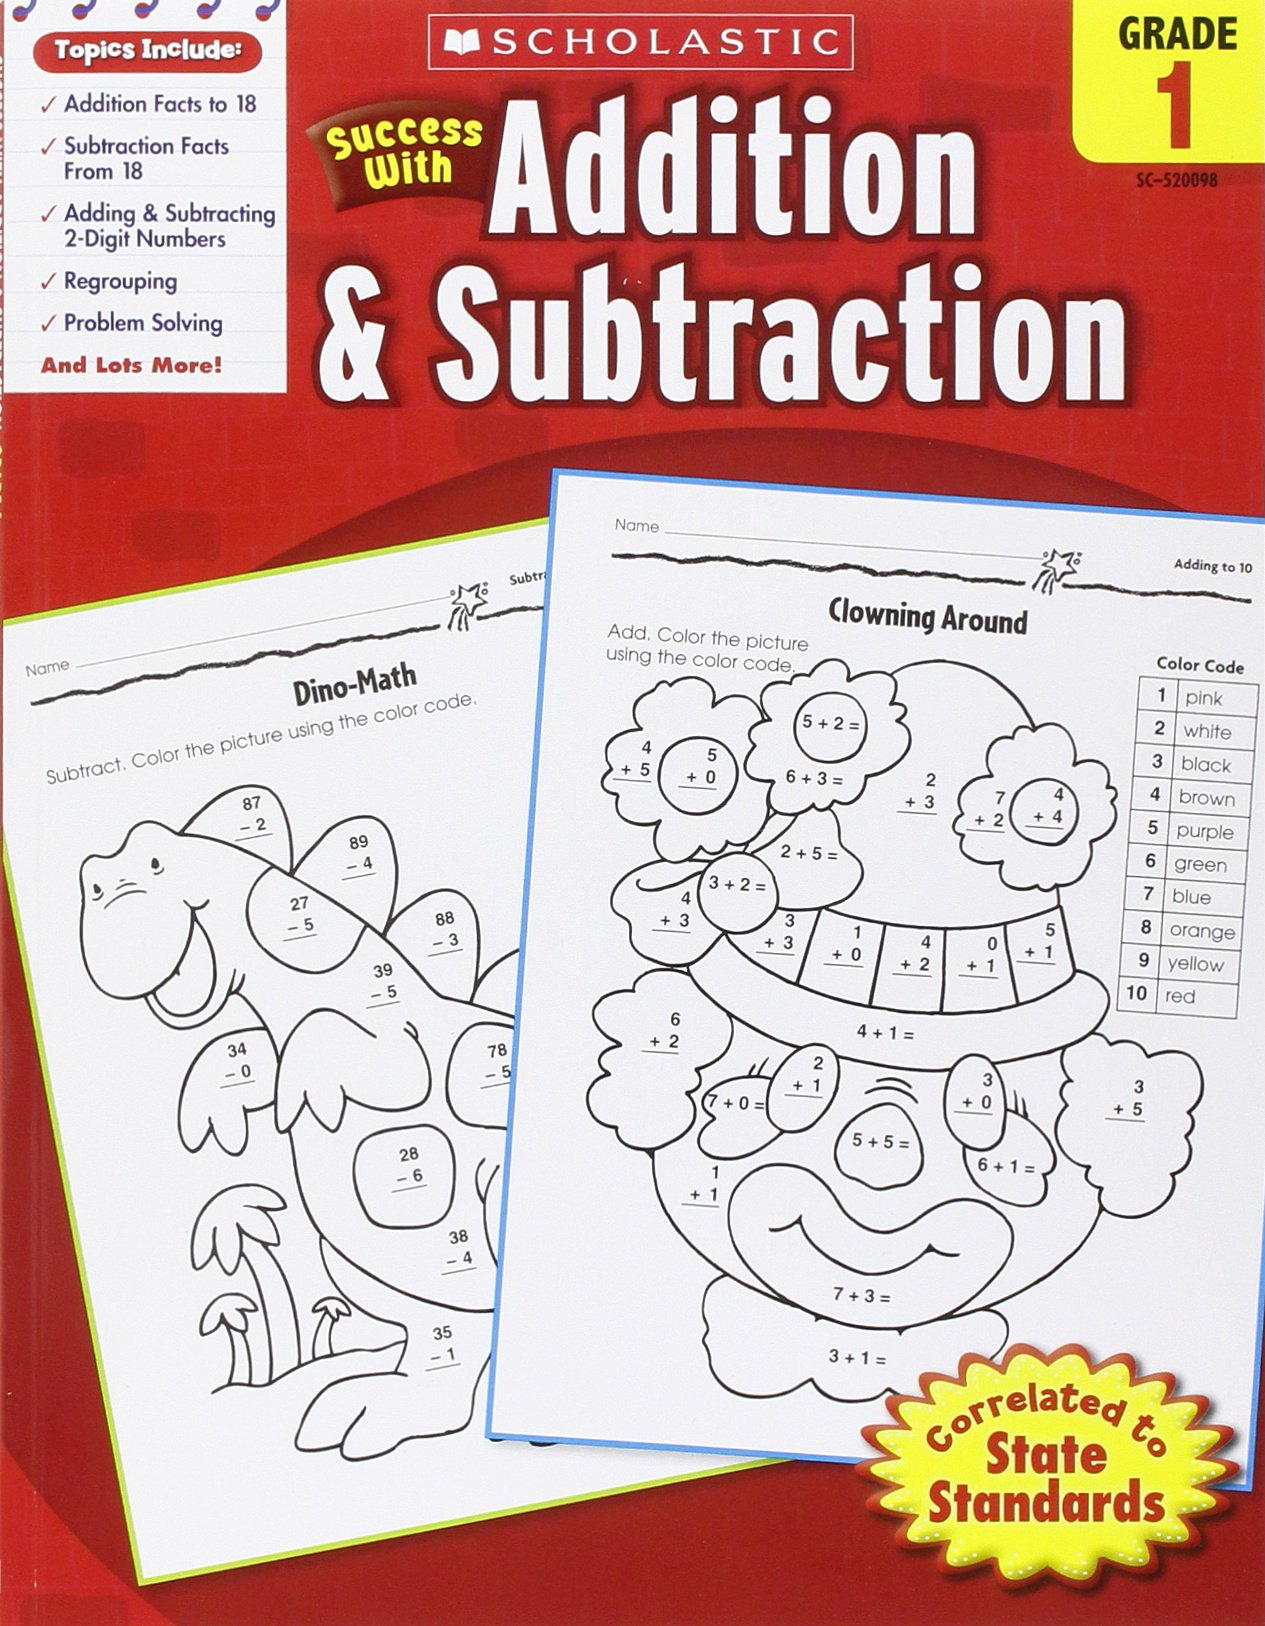 Scholastic Success with Addition & Subtraction, Grade 1 (Success With Math)  Paperback – March 1, 2010